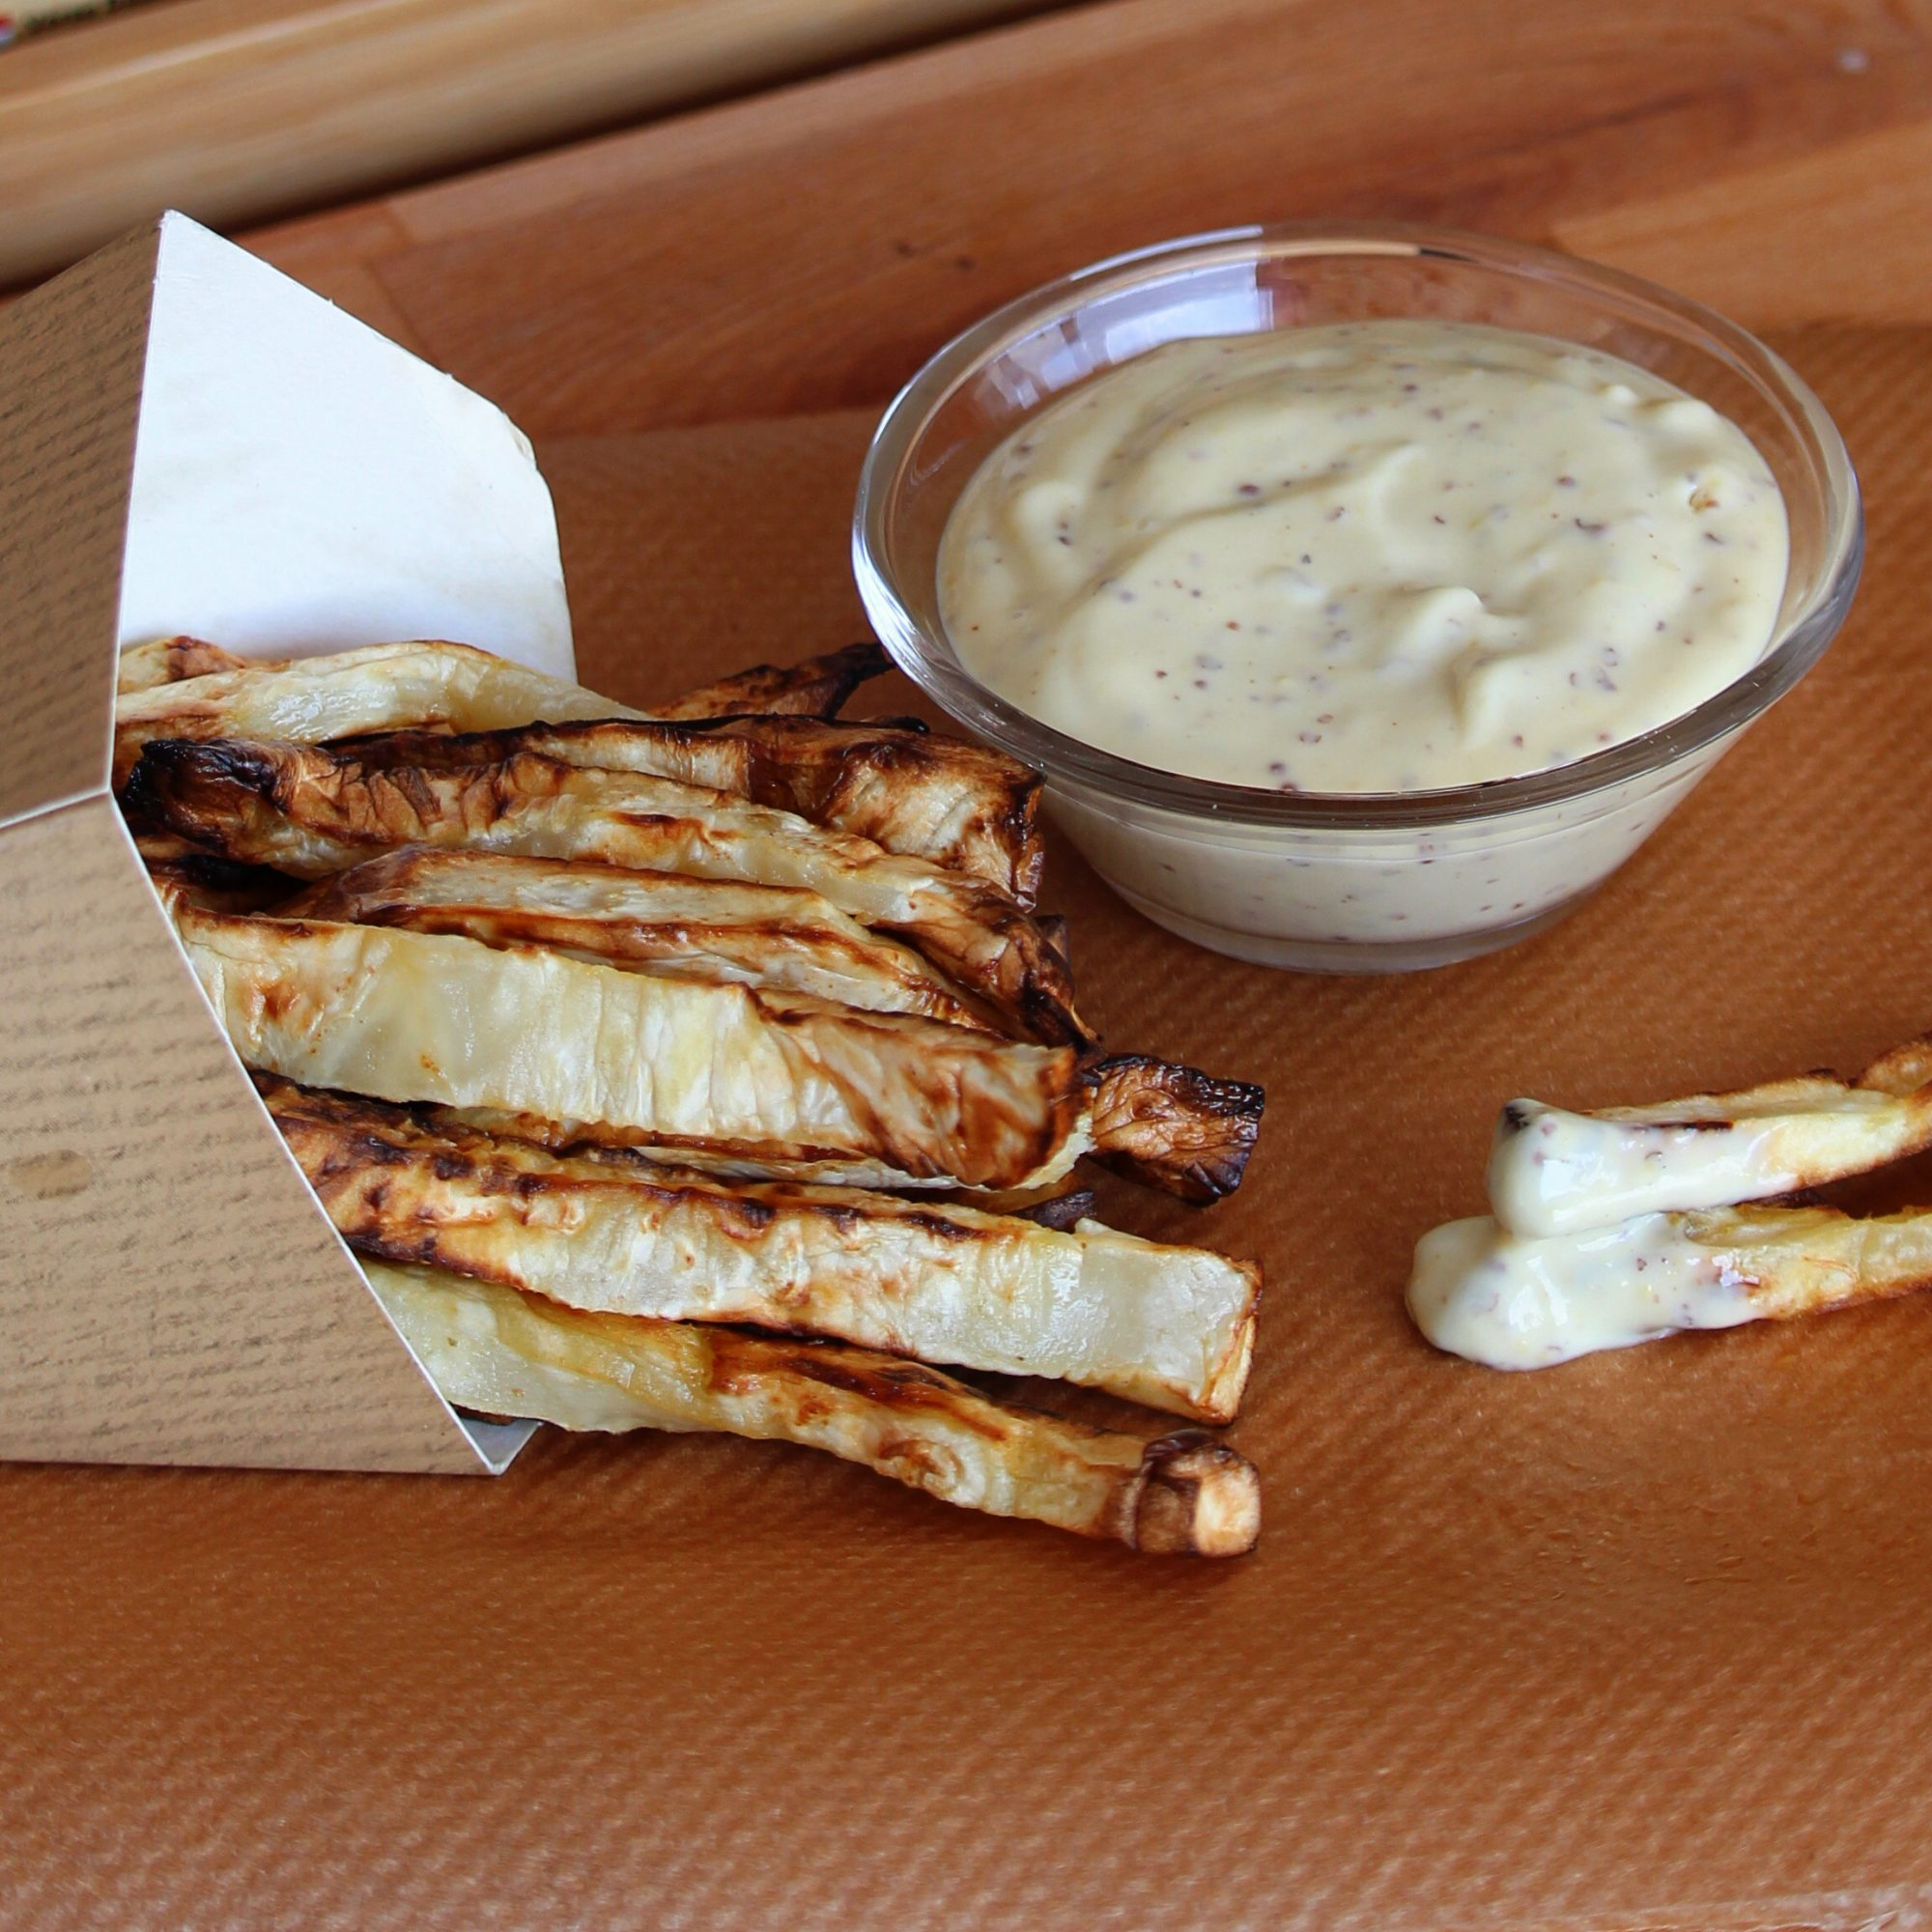 Fried celery root with dipping sauce